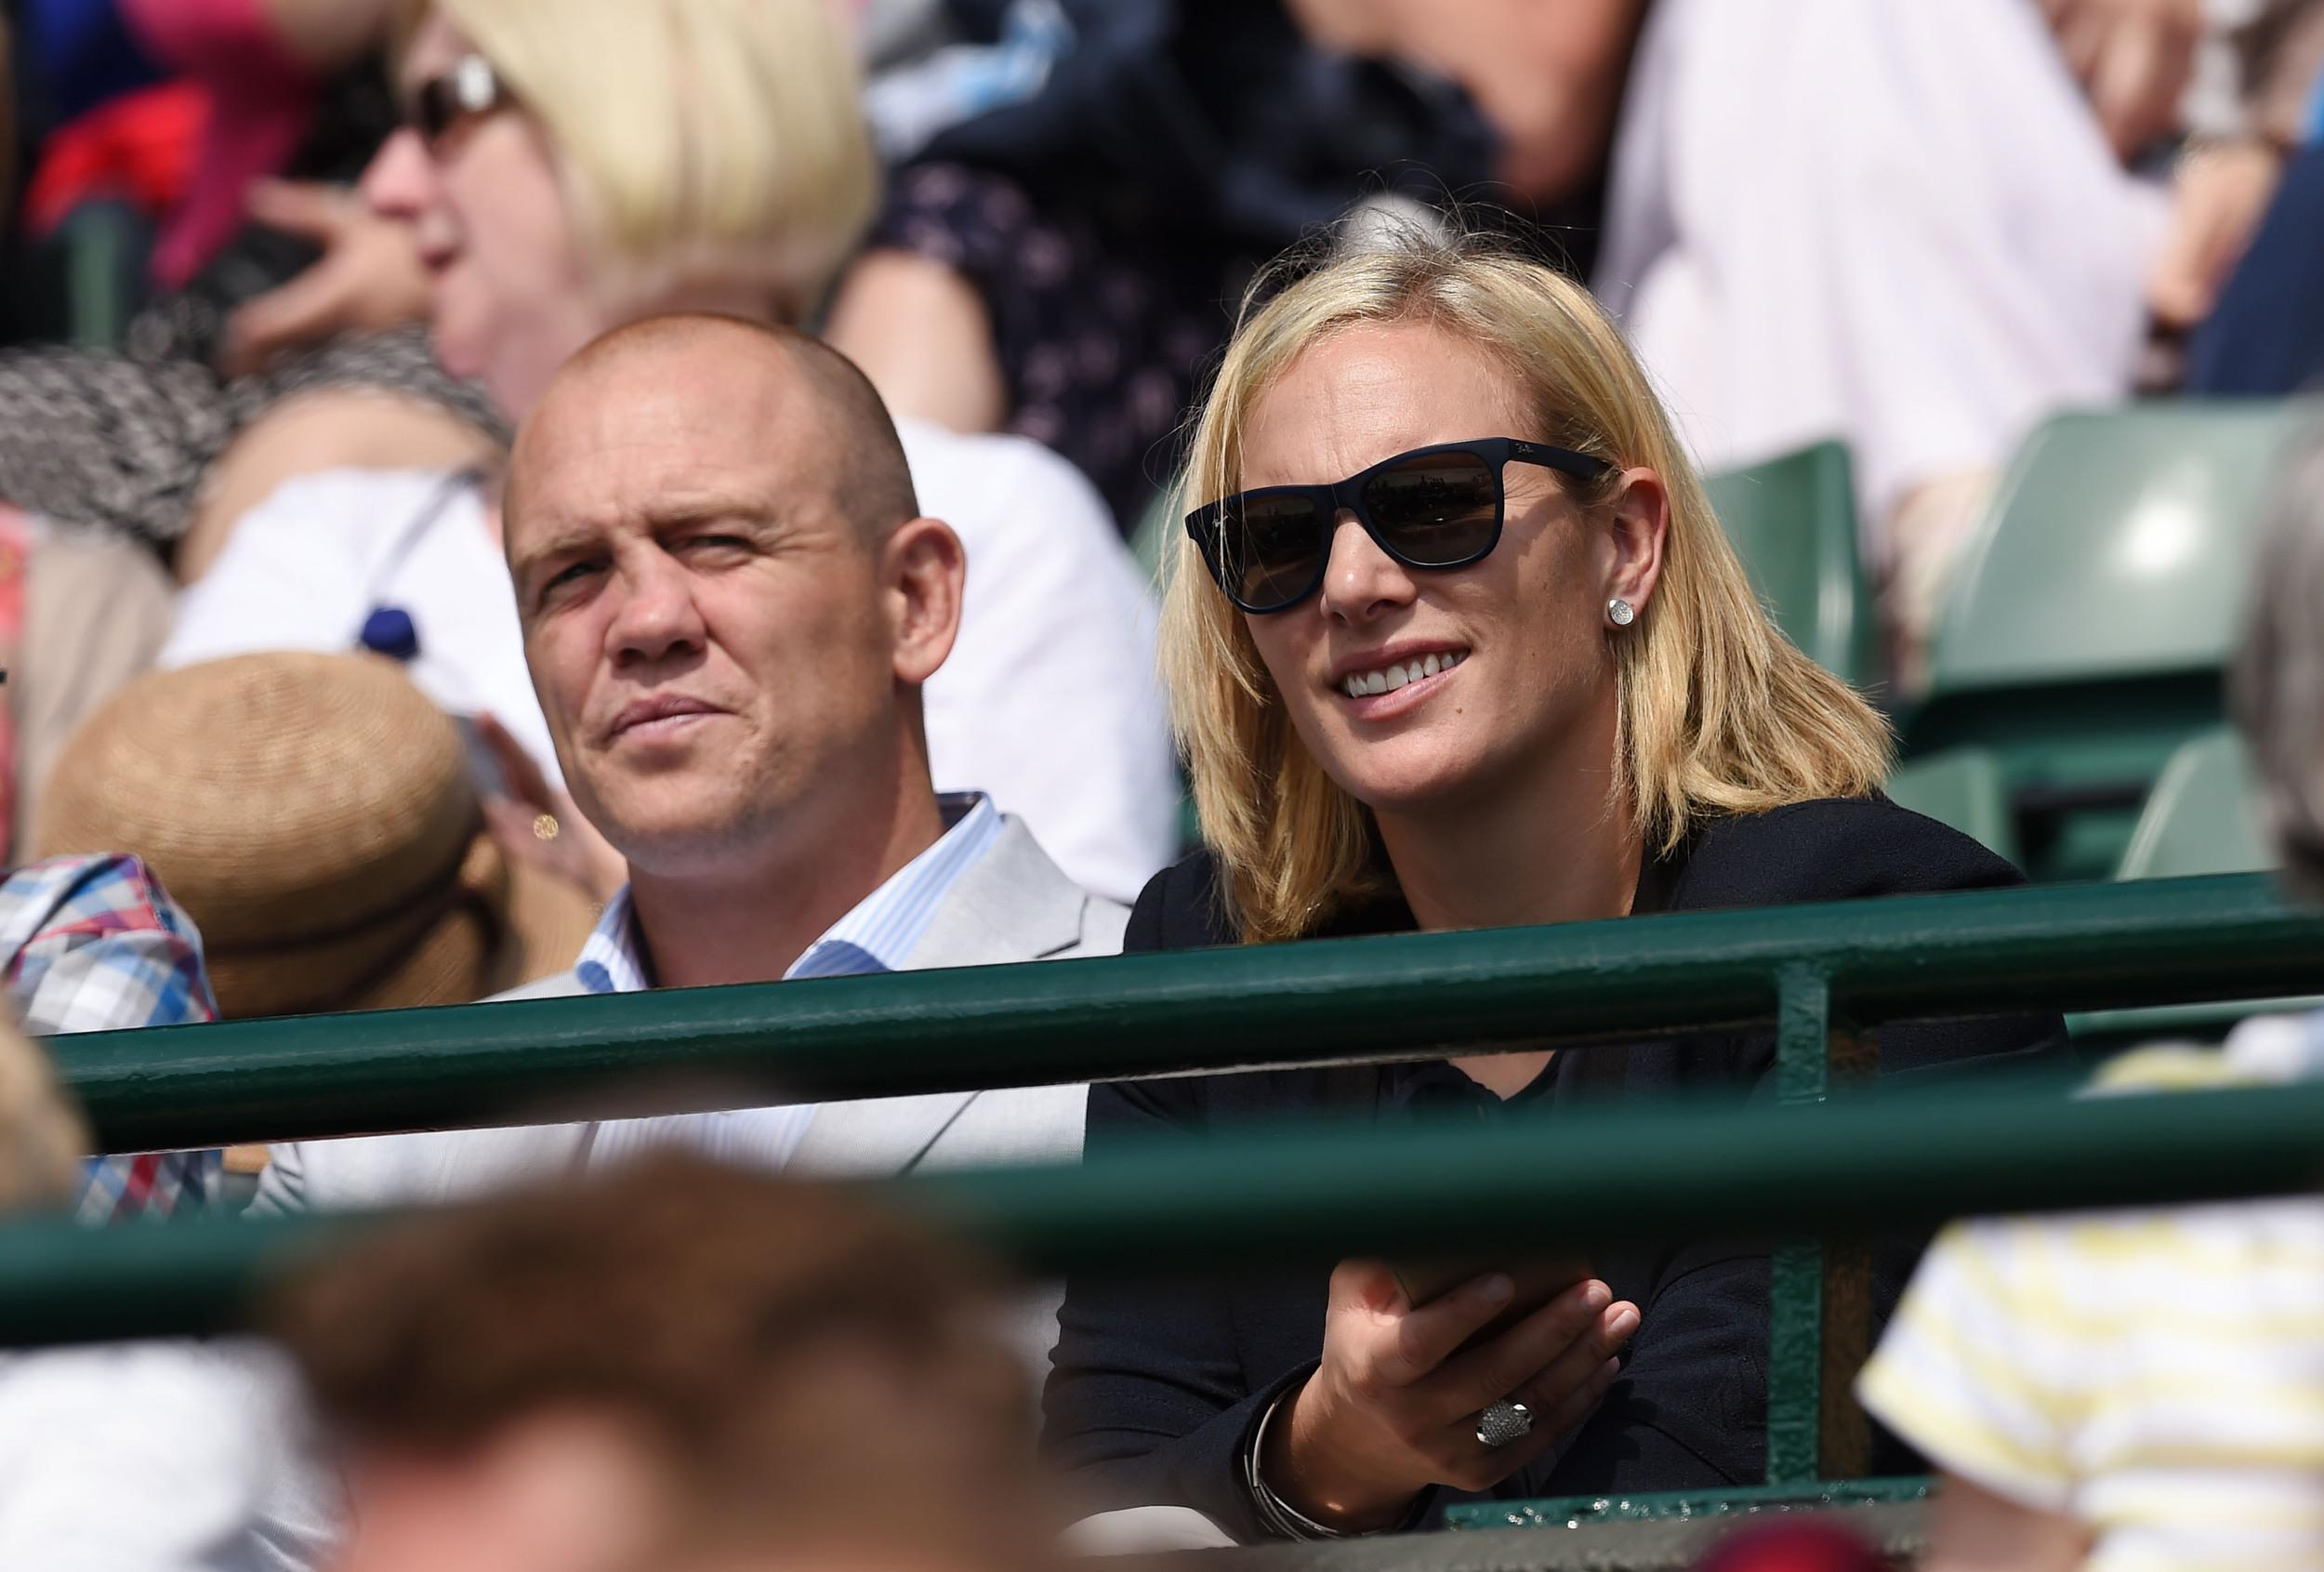 Tennis - Wimbledon - All England Lawn Tennis & Croquet Club, Wimbledon, England - 8/7/15 Men's Singles - Zara Phillips with husband Mike Tindall on court 1 during the quarter finals Action Images via Reuters / Tony O'Brien Livepic EDITORIAL USE ONLY.